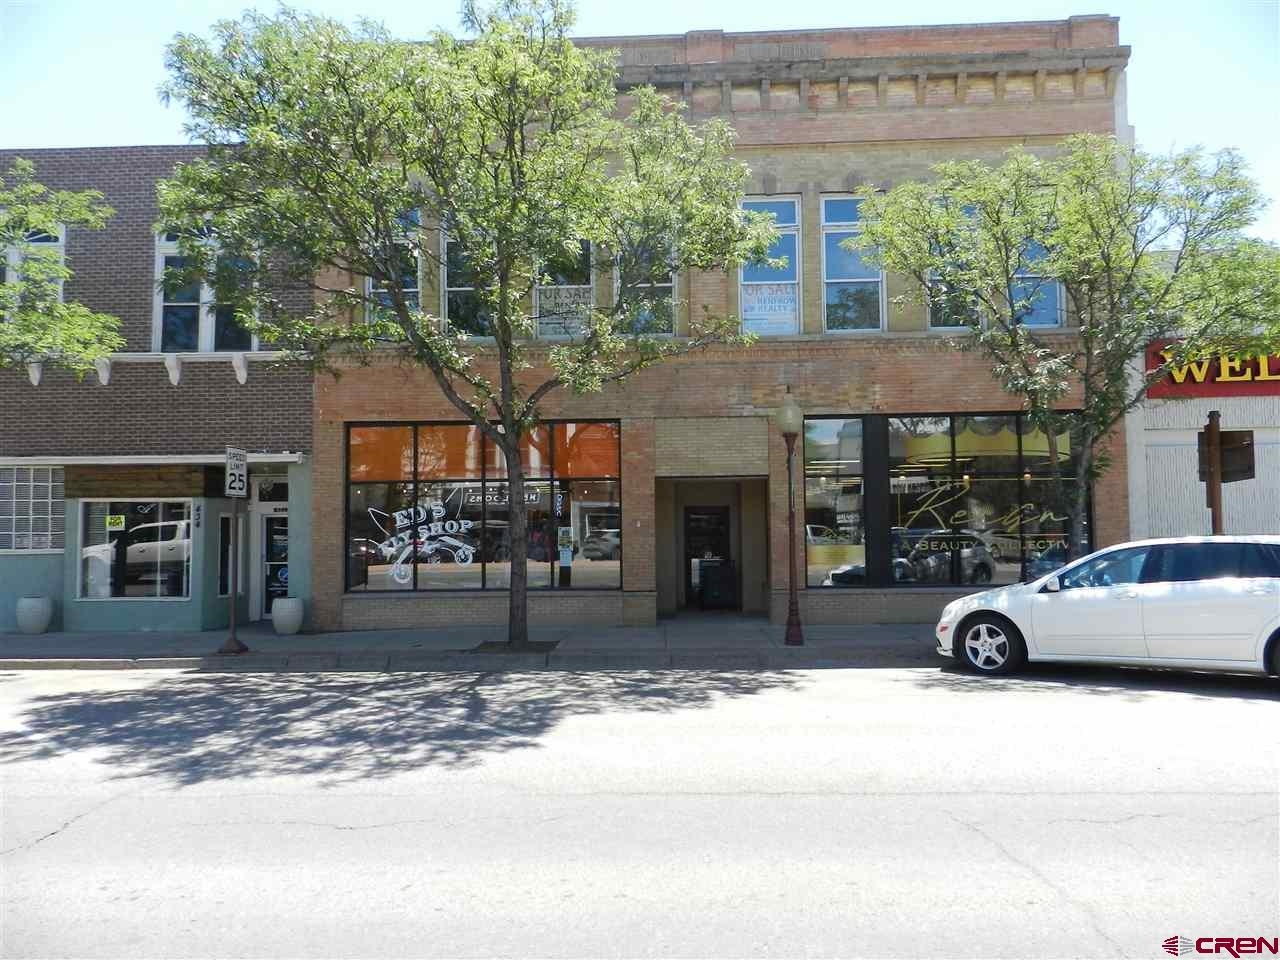 11,708 sq.ft. (MOL) which includes, two 2,200 sq.ft. (MOL) historic downtown retail spaces and 5,880 sq.ft. (MOL) upper story office/apartment potential. Two street-level retail units with back common area of two ADA restrooms, storage and double delivery door from alley. 432 E Main is currently leased, 428 E Main will be available the end of September. Second story has beautiful hardwood staircase from Main Street and newly constructed rear staircase to alley. Open canvas to build-out expansive upper space to professional offices, apartments, live-work studios or a combination. Adjacent to Wells Fargo Bank and central to downtown's restaurants and shopping. Assessor does not currently recognize second story in its heated square footage.  Incredible tax break with Opportunity Zone designation!